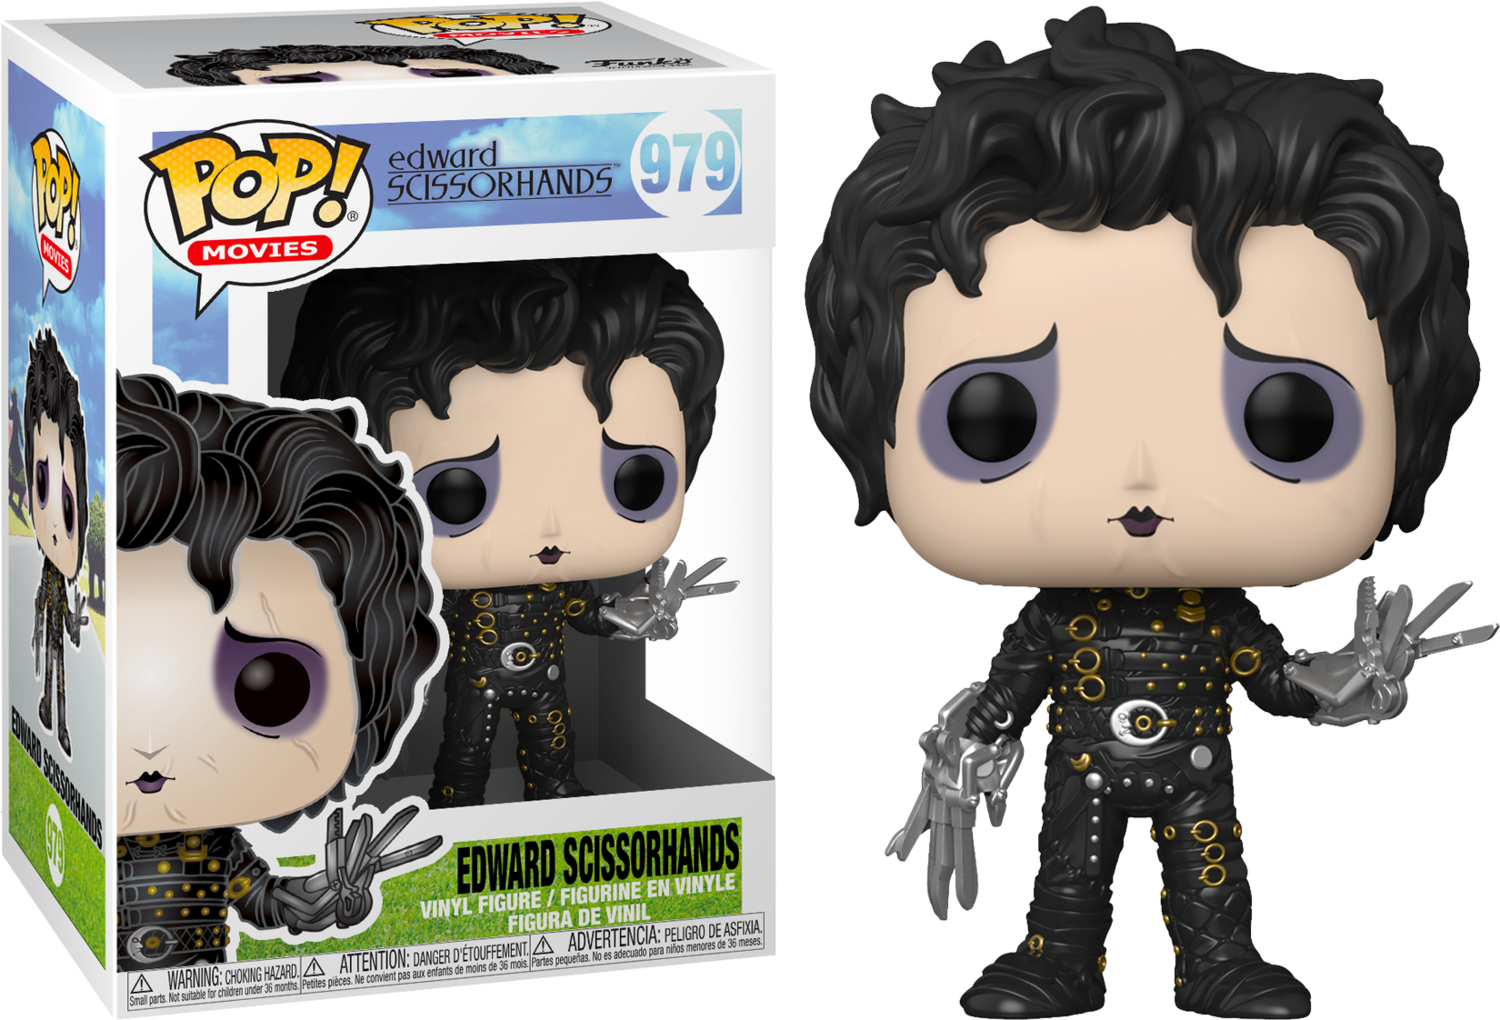 Edward Scissorhands - Edward Scissorhands Pop! Vinyl Figure